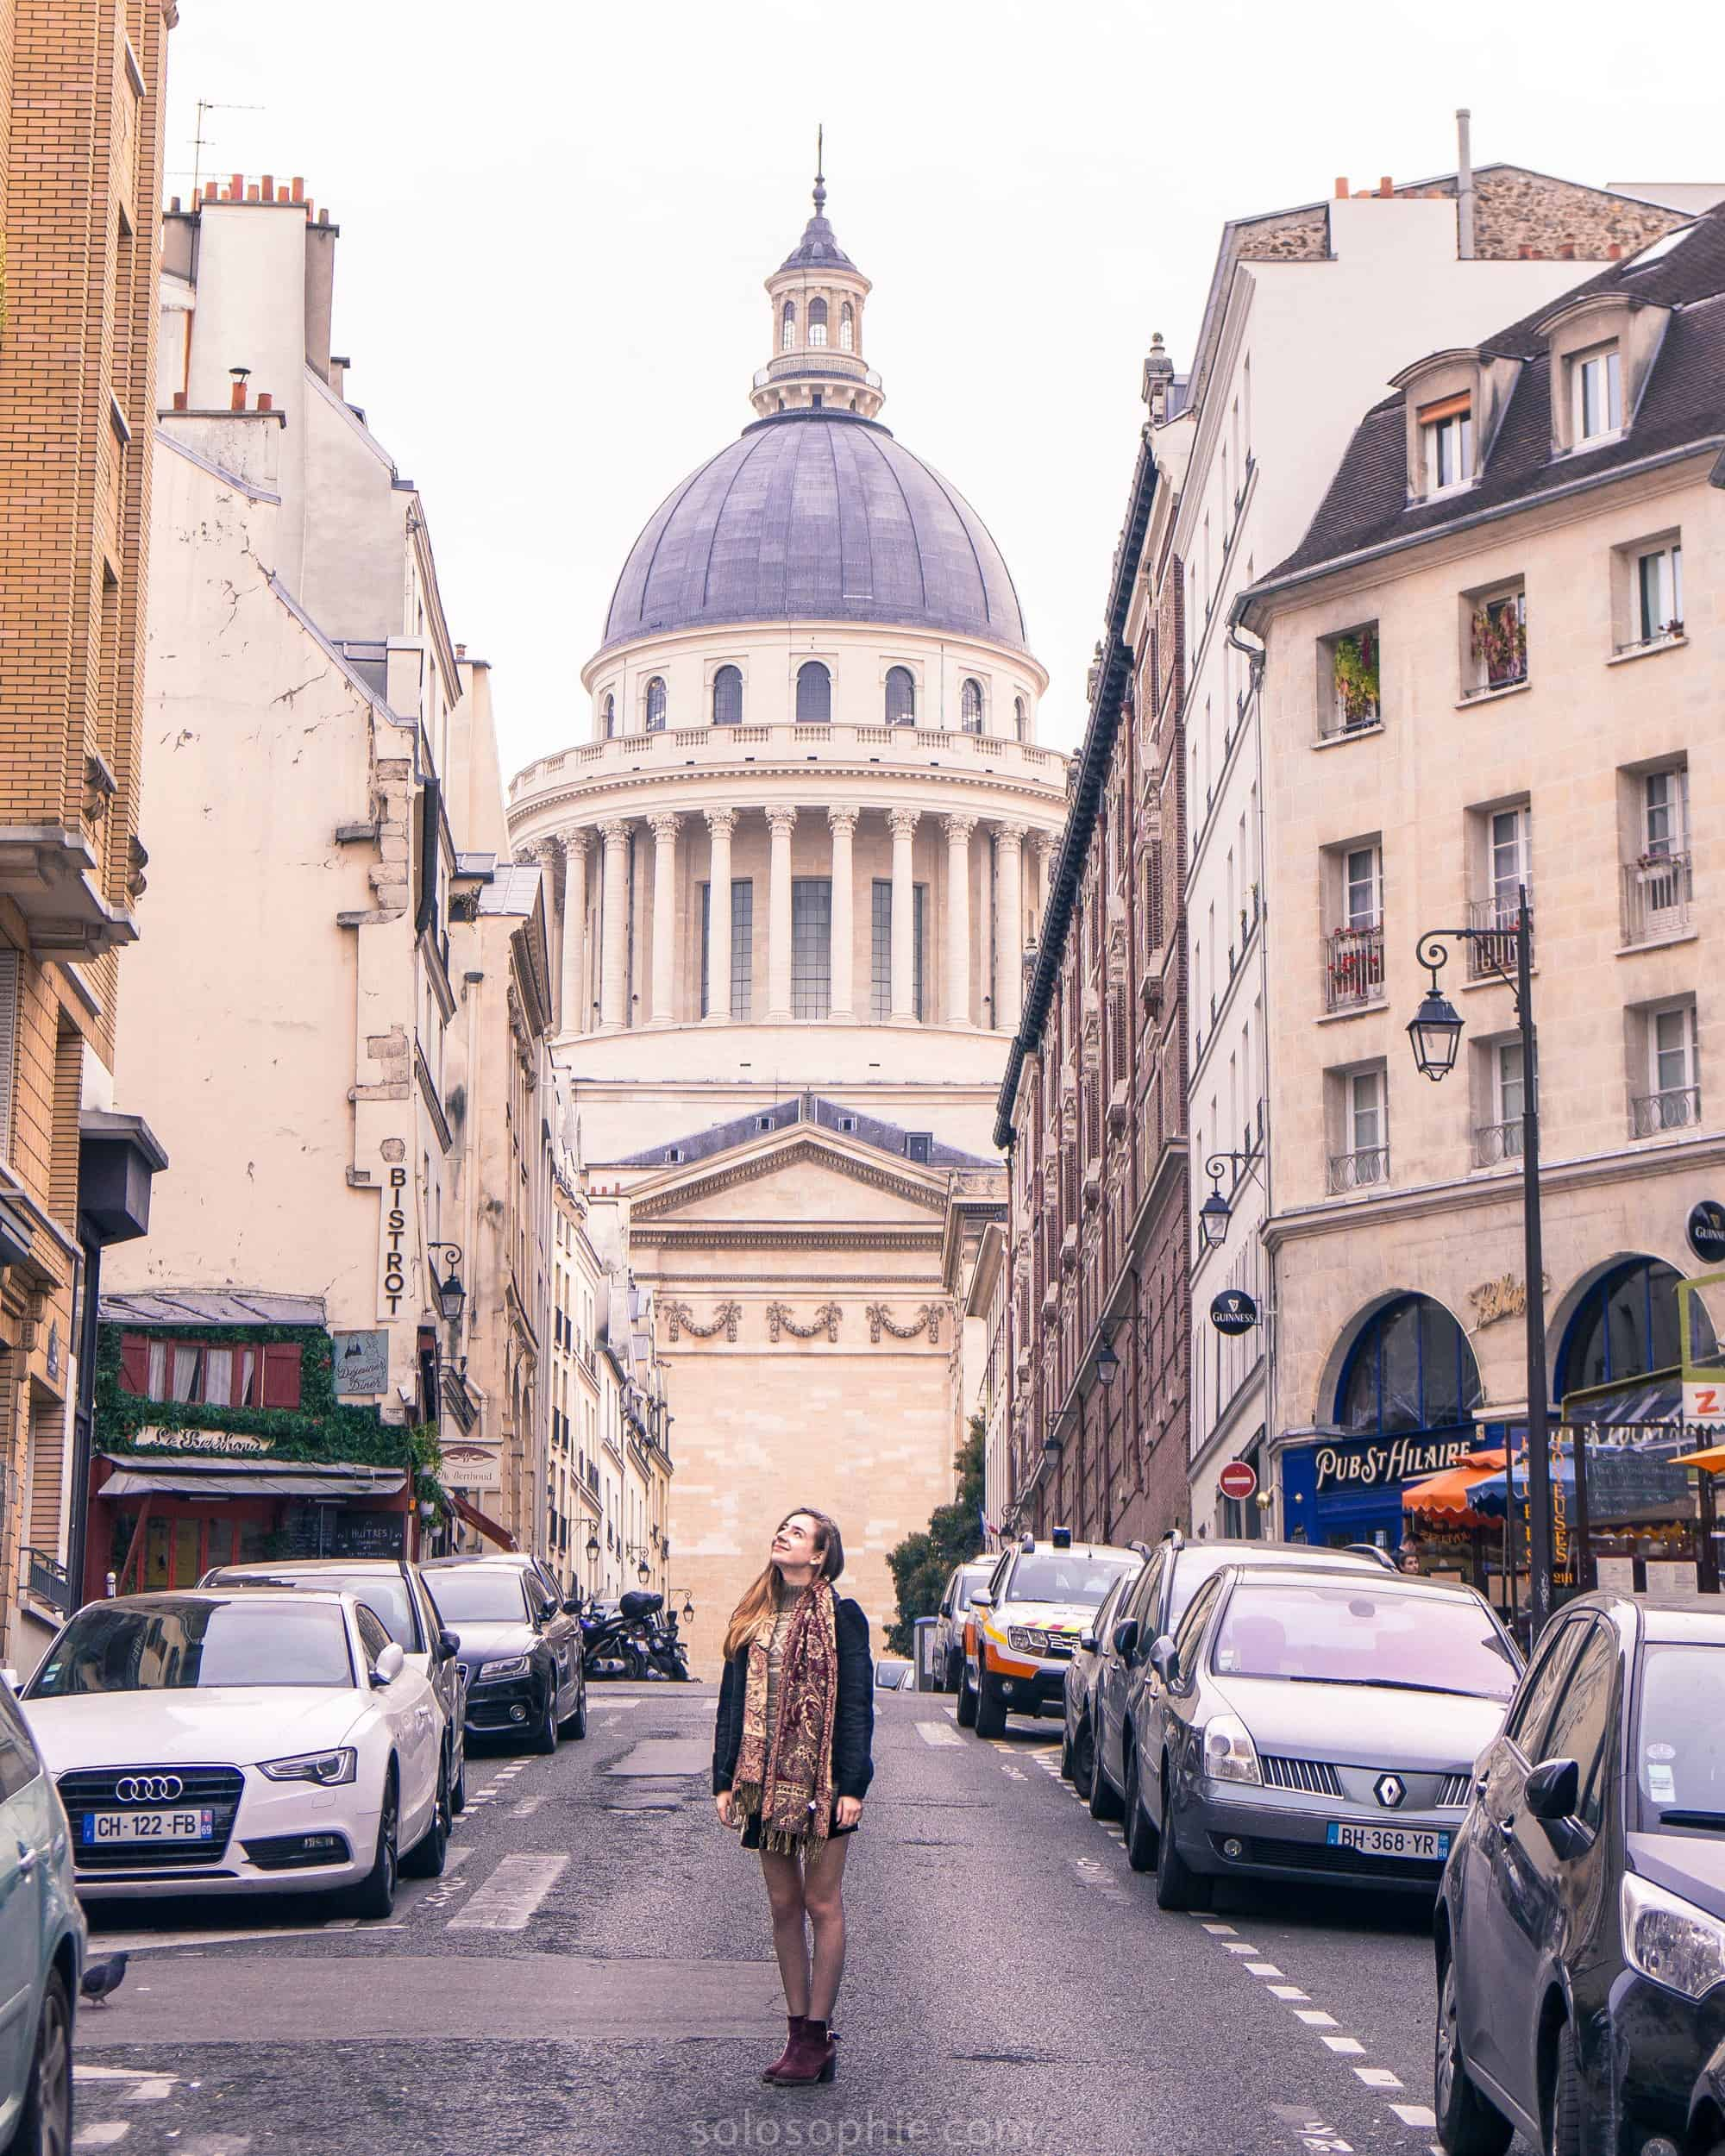 Reasons to visit paris in the winter: why you should go to Paris, France in the winter season!